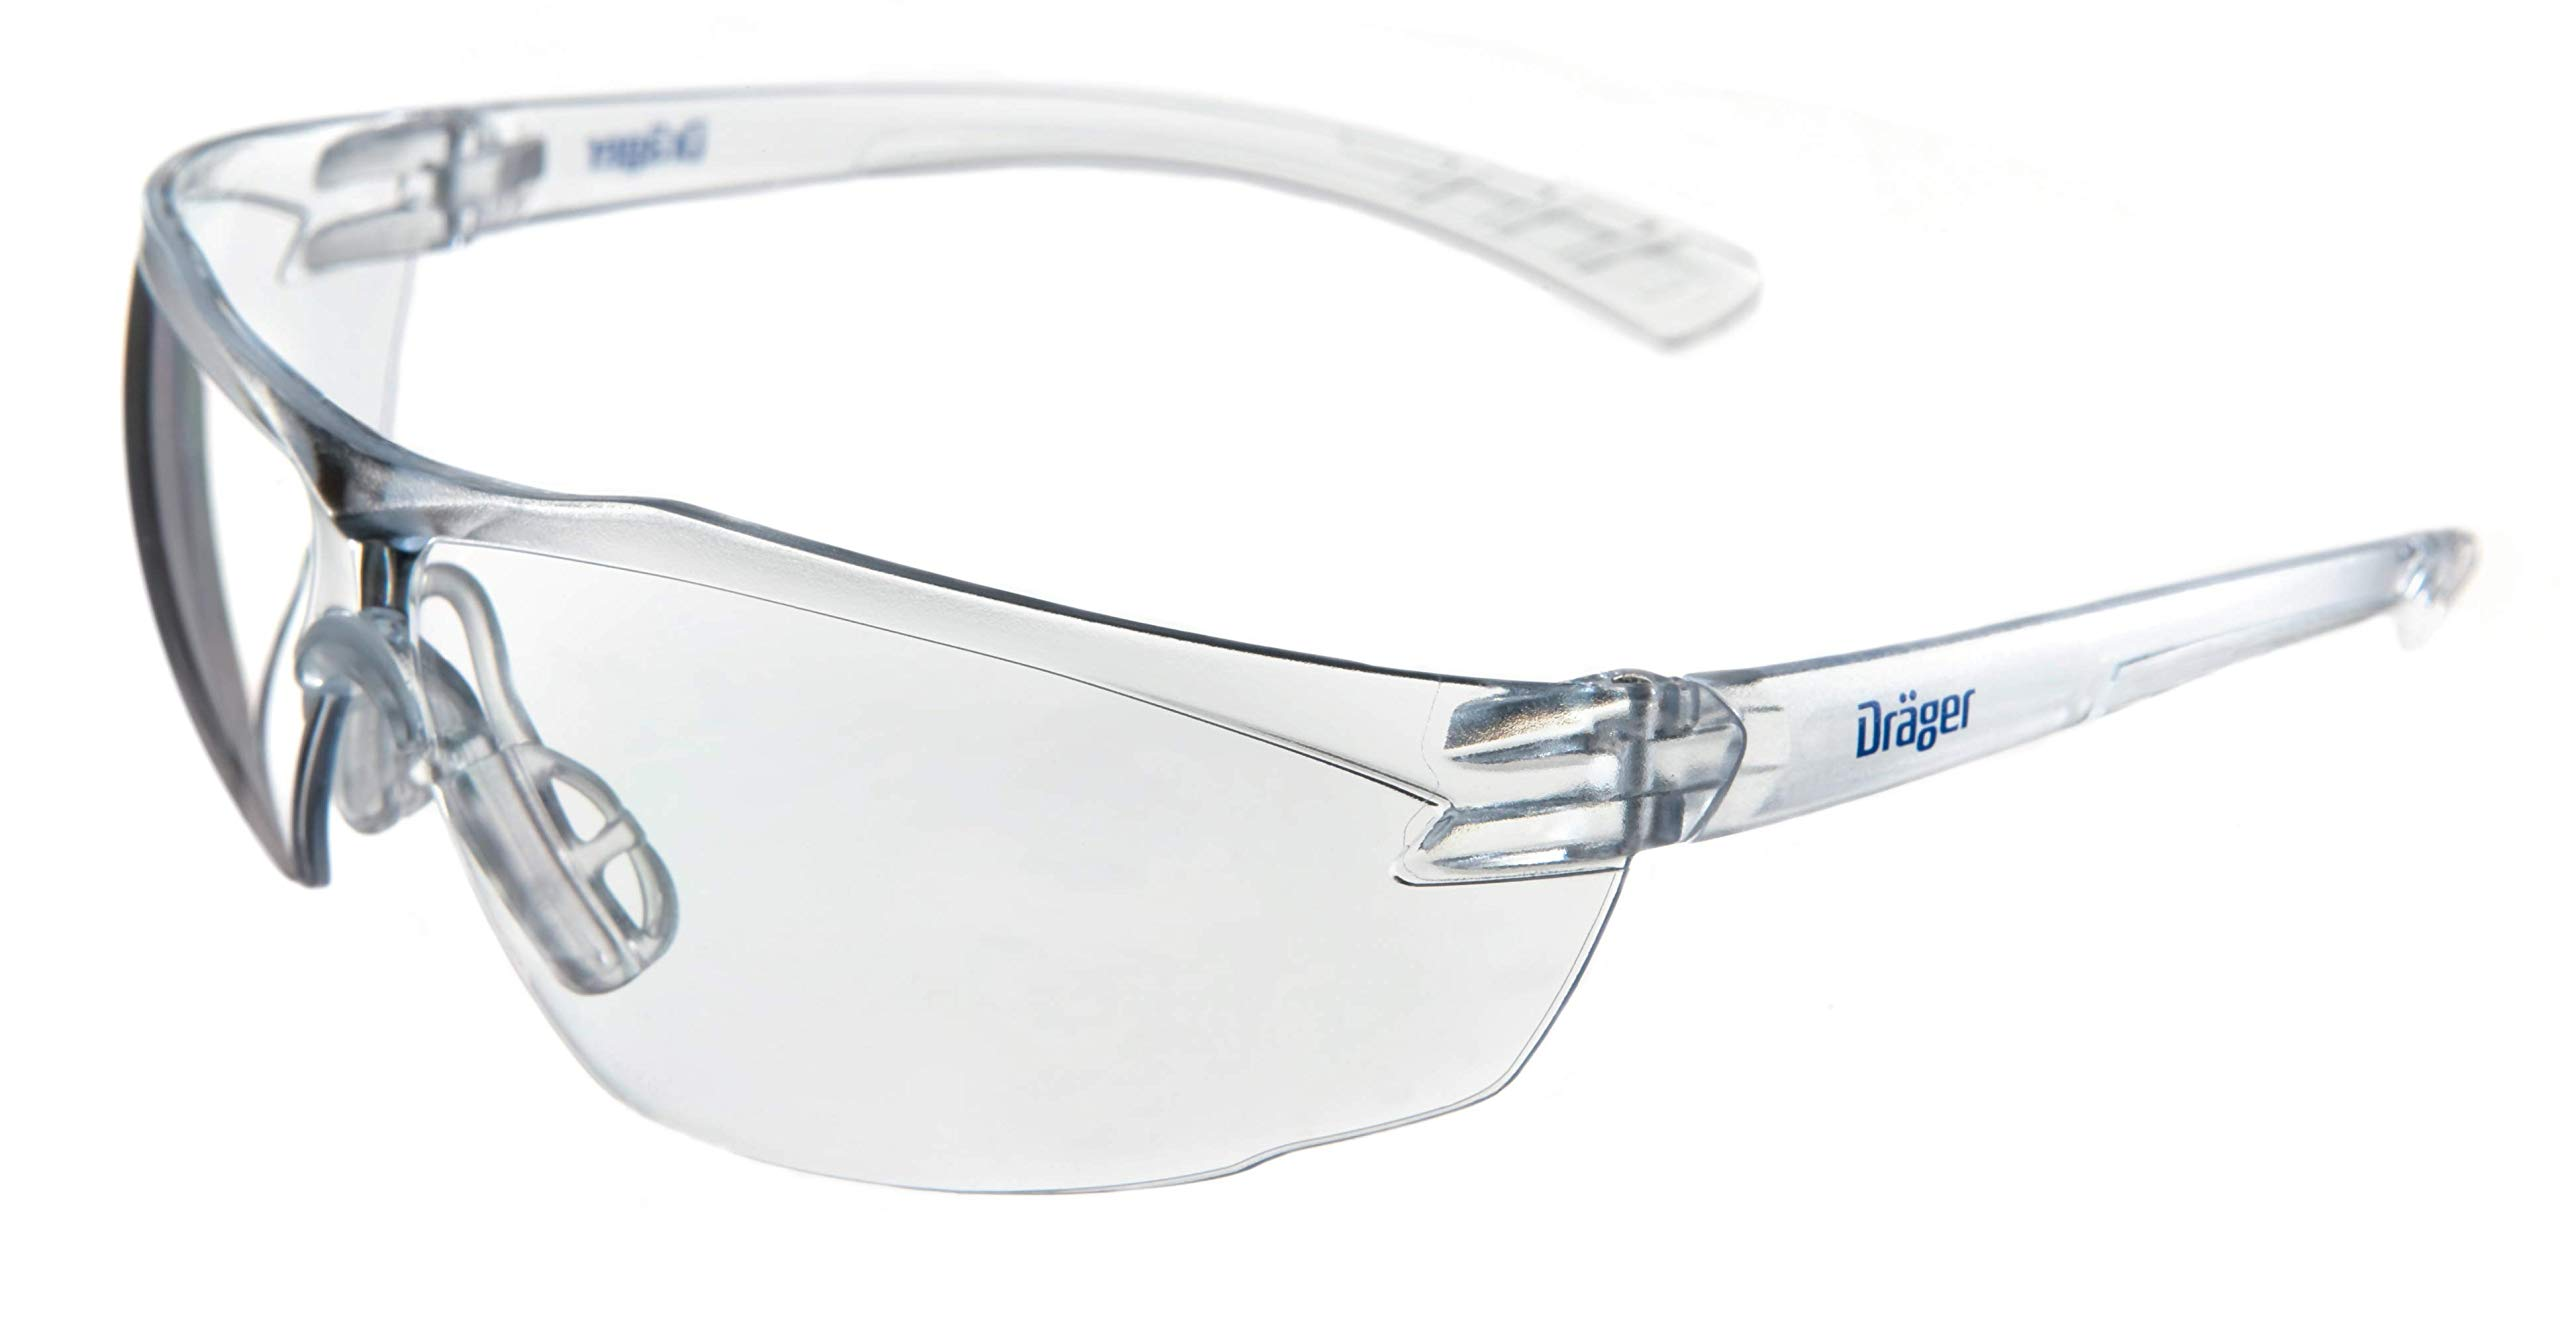 Dräger X-pect 8320 Protective Eyewear, ANSI Approved, 10 Pack, Anti-Scratch, Anti-Fog, Break-Resistant Safety Glasses, UV Protection (99.9%), Clear Lenses by Dräger